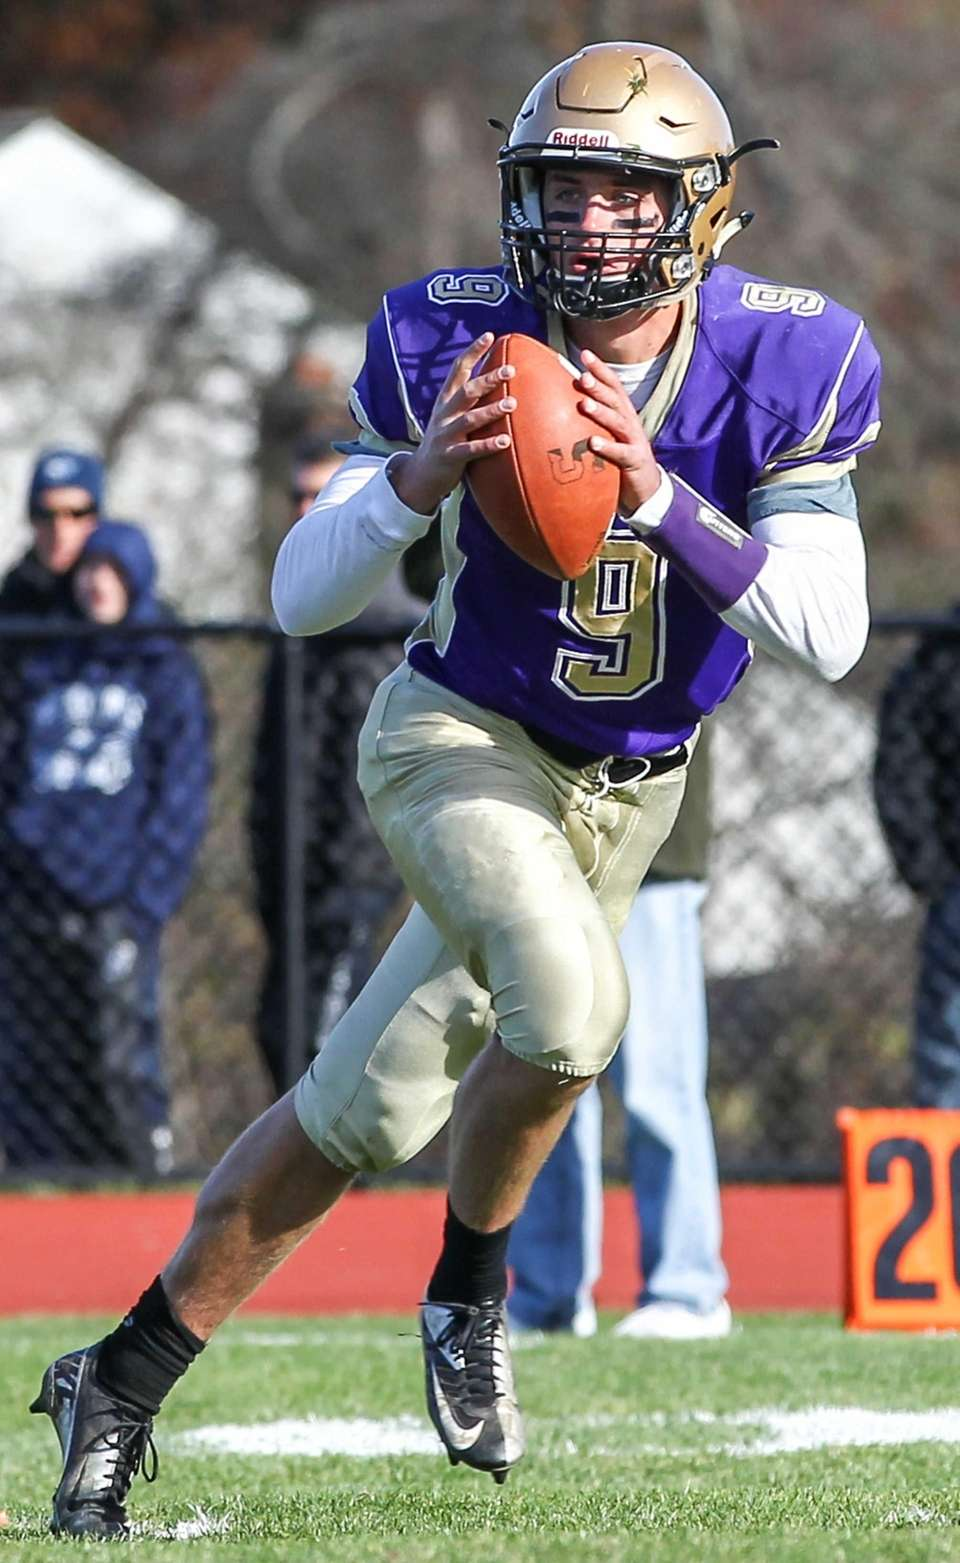 Jack Coan of Sayville fades back to pass